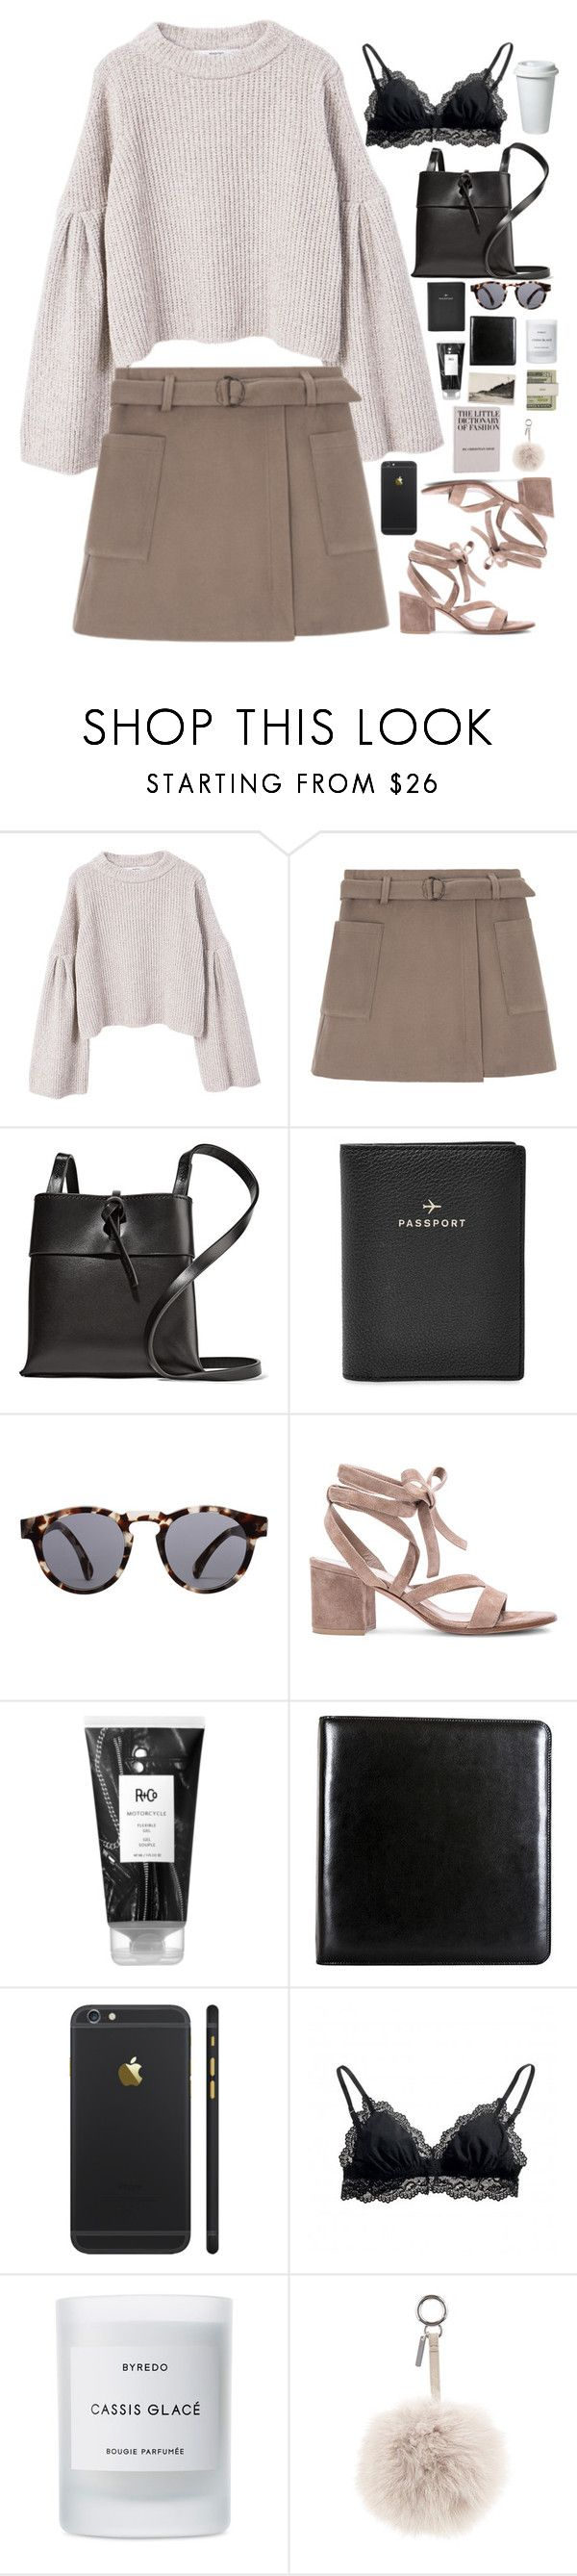 """""""Untitled #2958"""" by wtf-towear ❤ liked on Polyvore featuring MANGO, Kara, FOSSIL, Illesteva, Gianvito Rossi, R+Co, Bosca, Cosabella, Byredo and Jack Spade"""